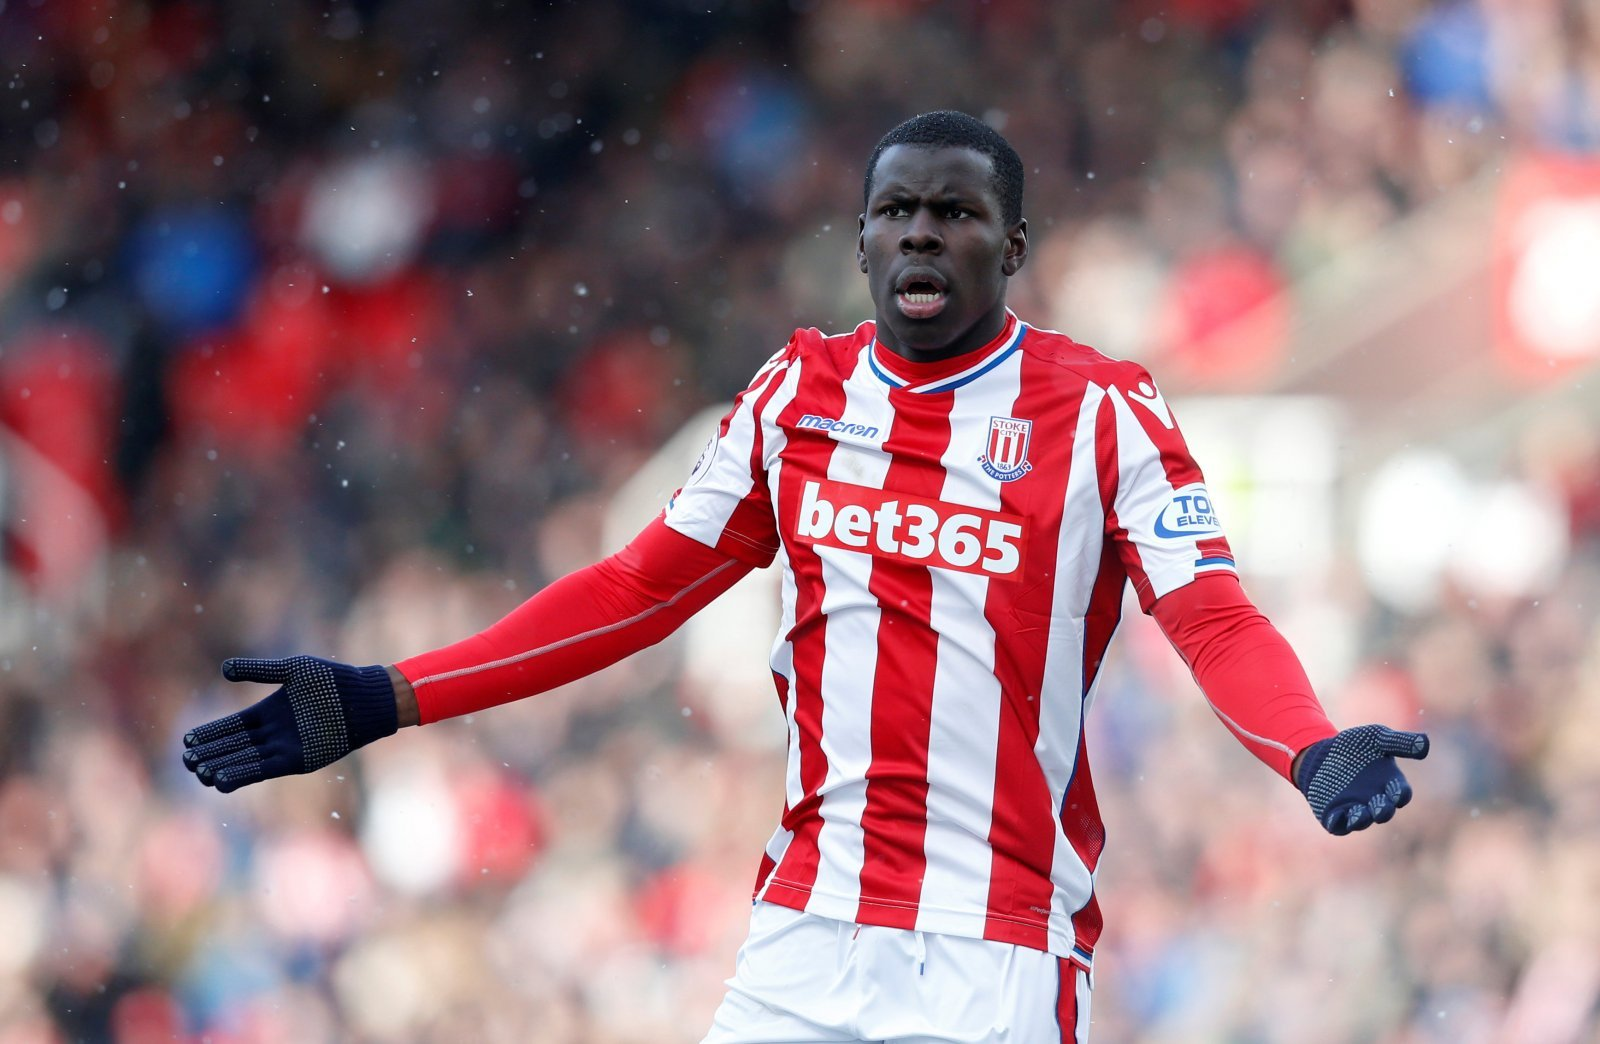 Everton fans on Twitter urge club to snap up Zouma